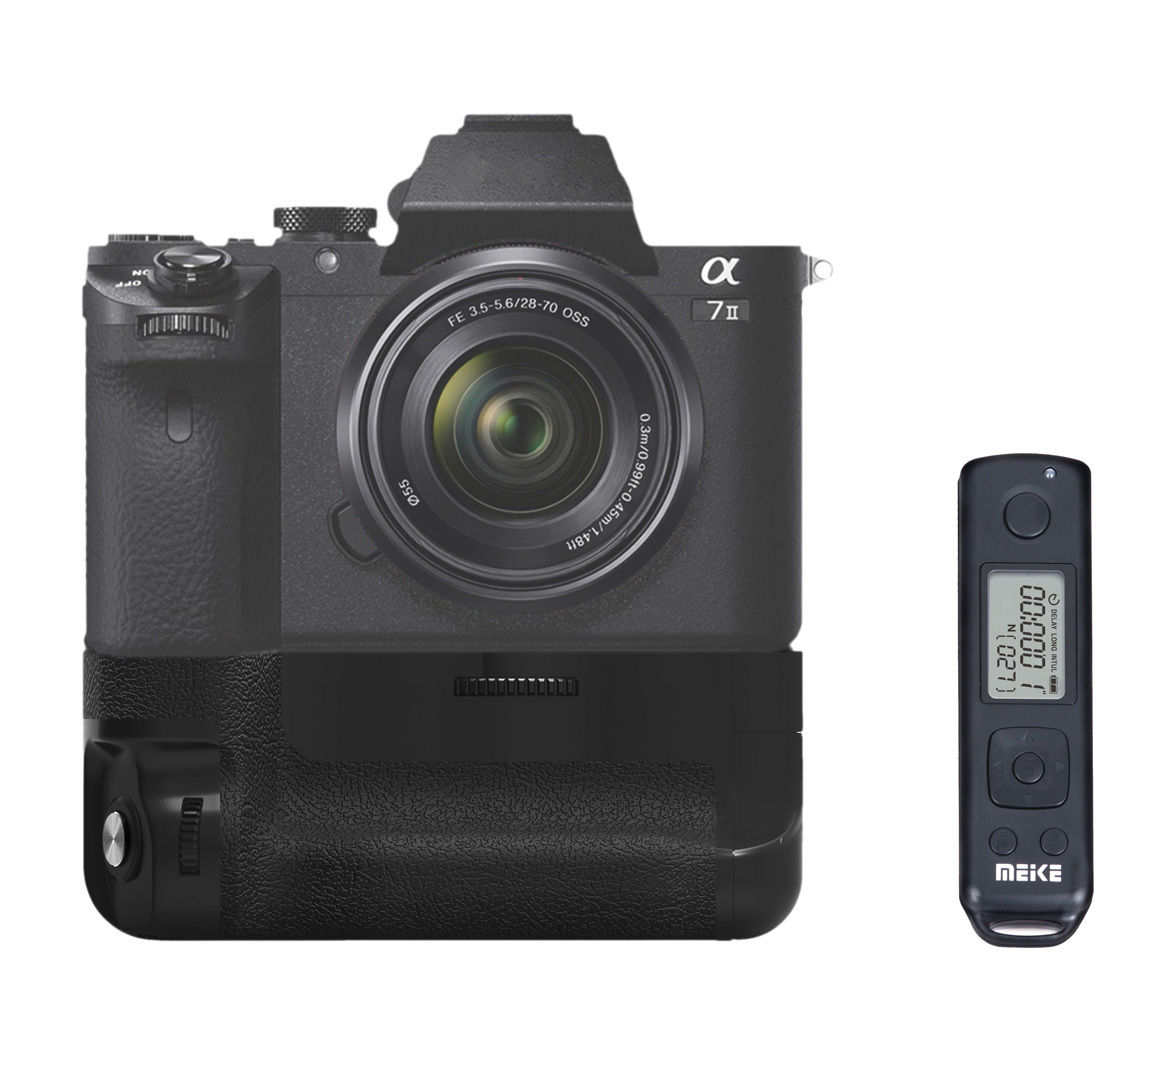 Meike MK-A7II Pro Built-in Wireless Control Battery Grip for Sony A7 II A7R II A7S II as for Sony VG-C2EM neewer meike battery grip for sony a6300 camera built in 2 4ghz remote control work with 1 or 2 np fw50 battery